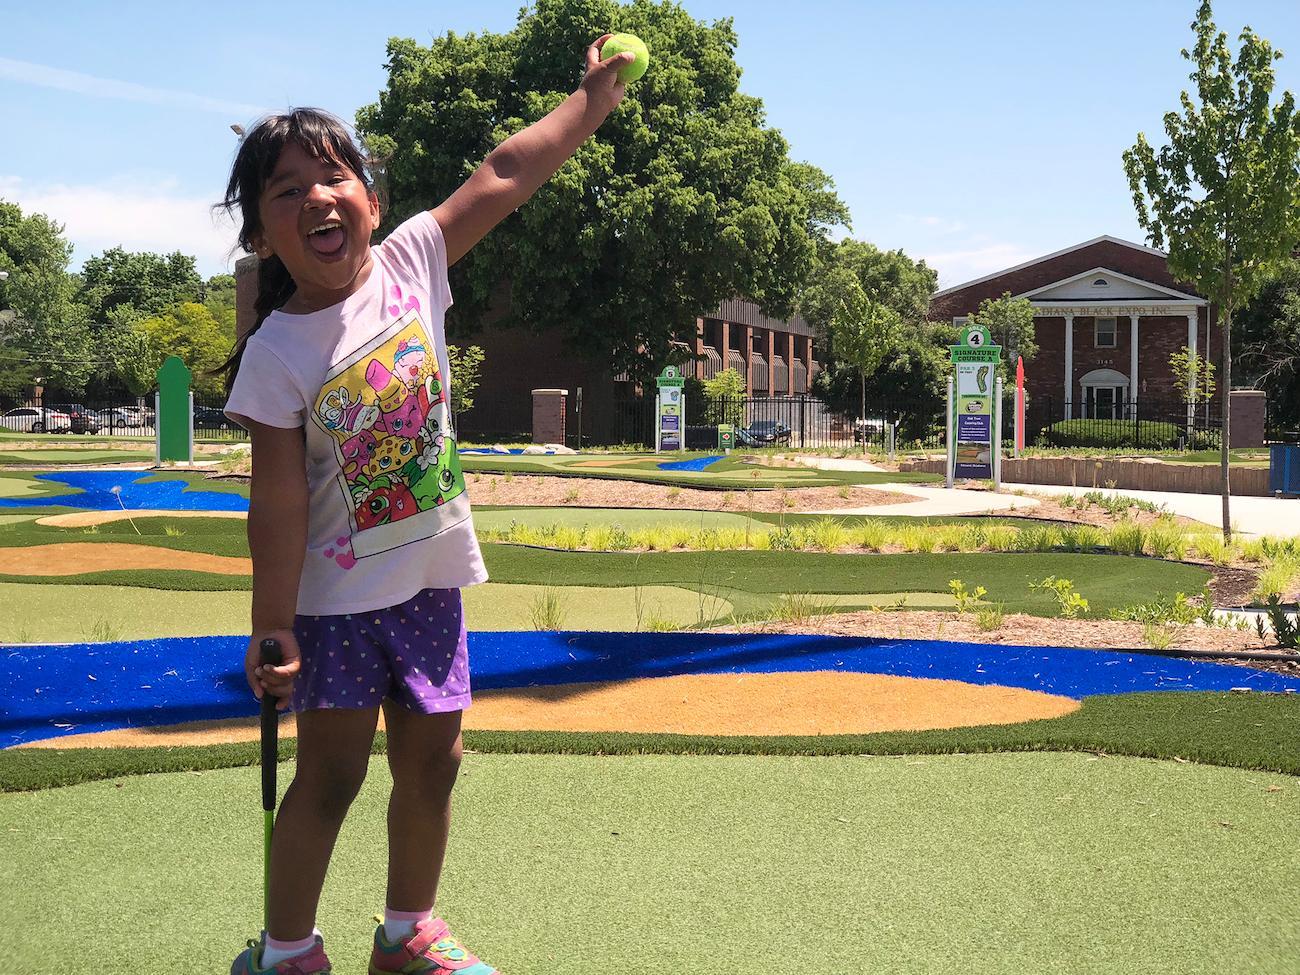 The Children's Museum of Indianapolis' Pete and Alice Dye Golf Experience invites legends-in-the-making to play on smaller scale versions of famous golf holes. / Image courtesy of Children's Museum of Indianapolis // Published: 4.2.19